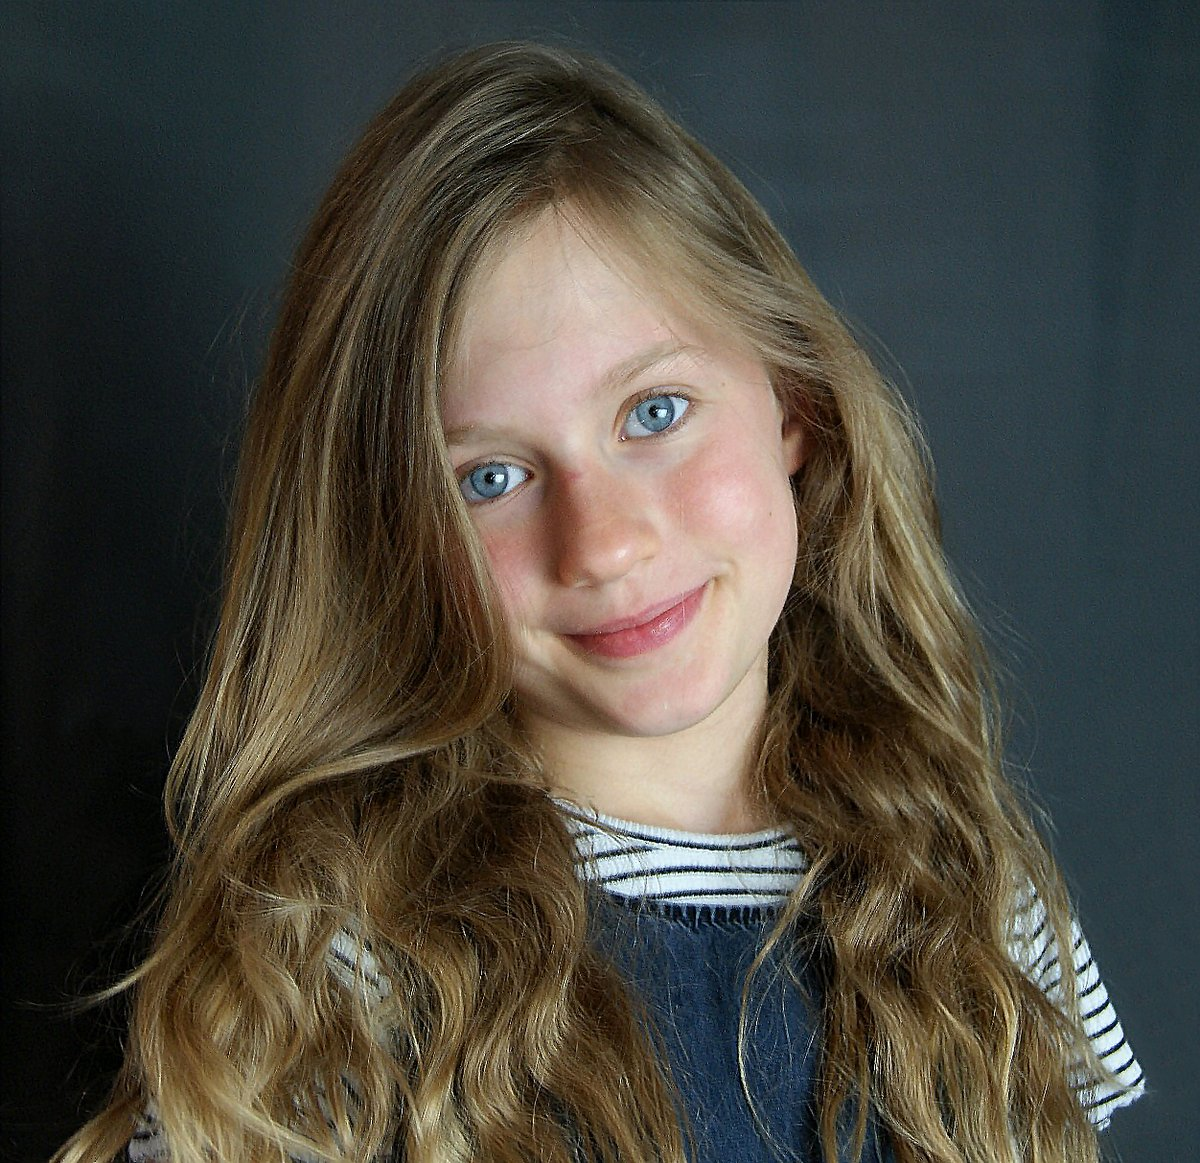 my new spotlight profile picture. Well the other one was over 2 years old!! https://www.spotlight.com/4936-6751-7431 #childactress #childmodel #actress #industrykids #model #kidactress #younghollywood #actorslife #youngactress #kidmodel #theatrekid #kidsfashion #hollywoodkids #castingpic.twitter.com/Jb9rANeKpb